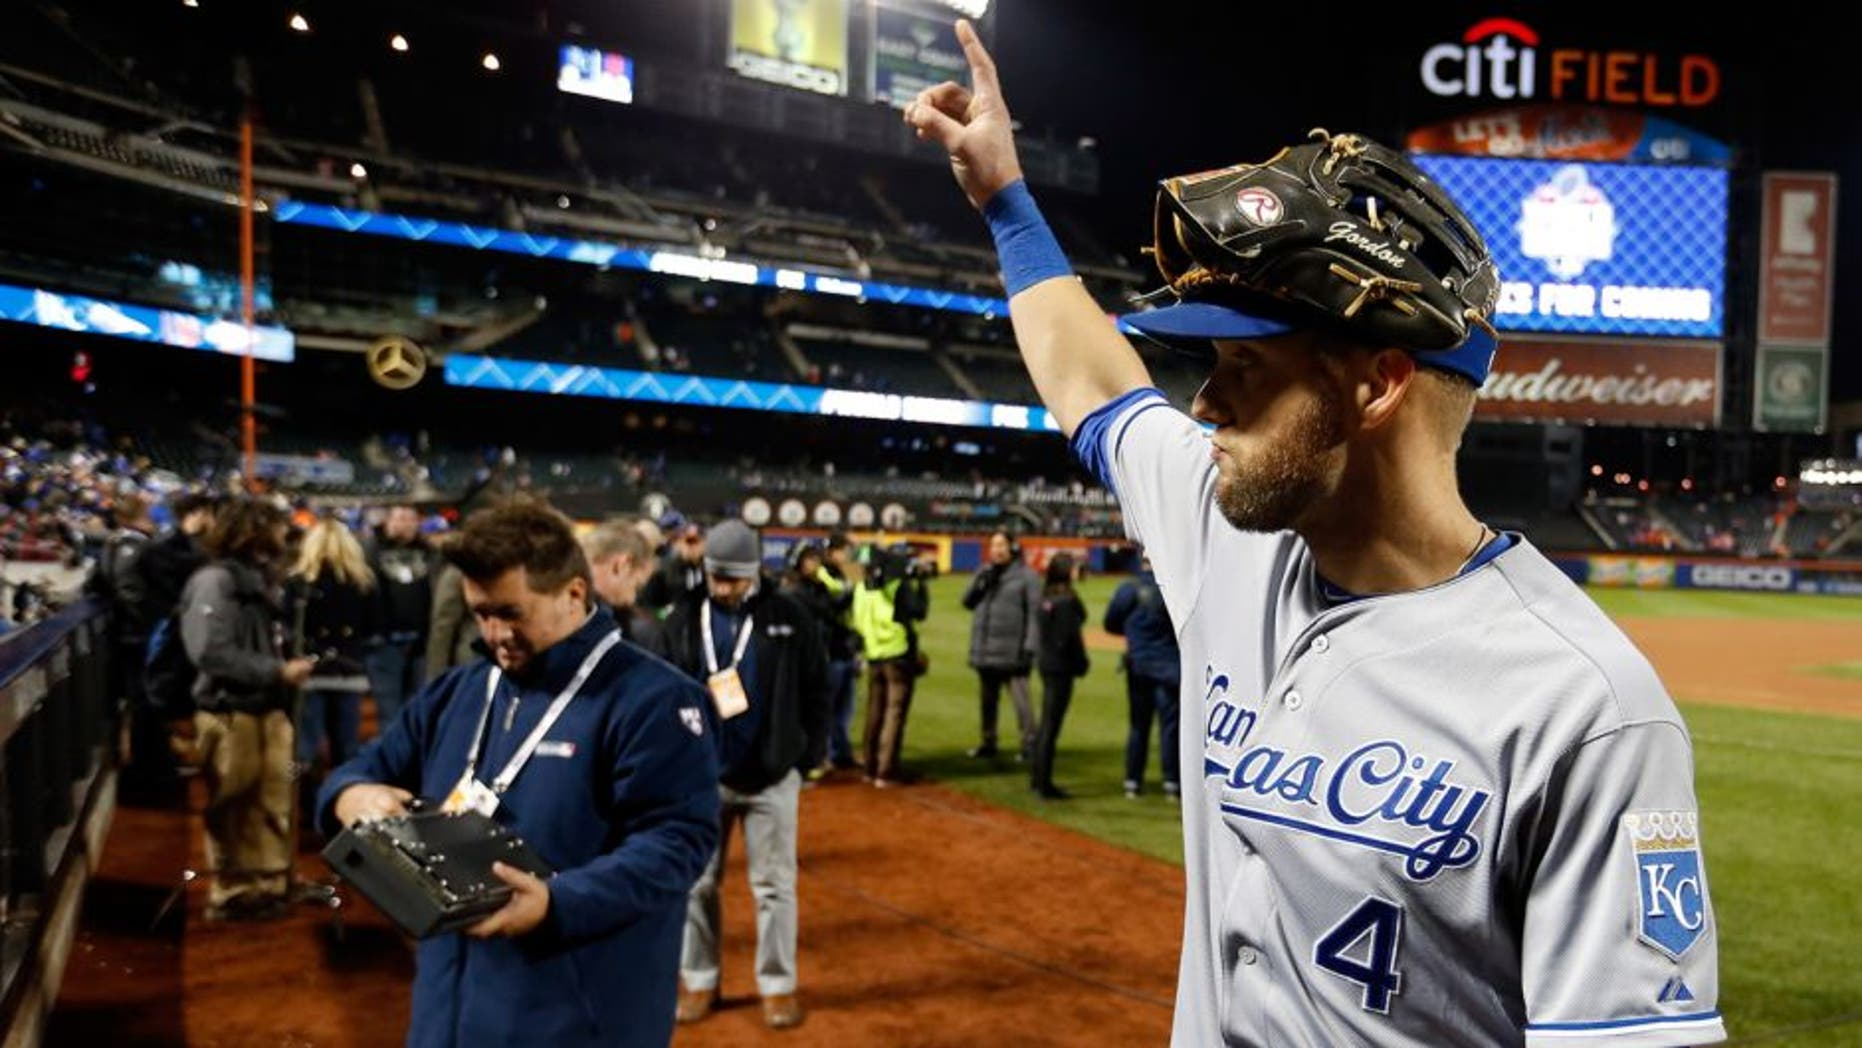 NEW YORK, NY - OCTOBER 31: Alex Gordon #4 of the Kansas City Royals celebrates after defeating the New York Mets by a score of 5-3 to win Game Four of the 2015 World Series at Citi Field on October 31, 2015 in the Flushing neighborhood of the Queens borough of New York City. (Photo by Sean M. Haffey/Getty Images)